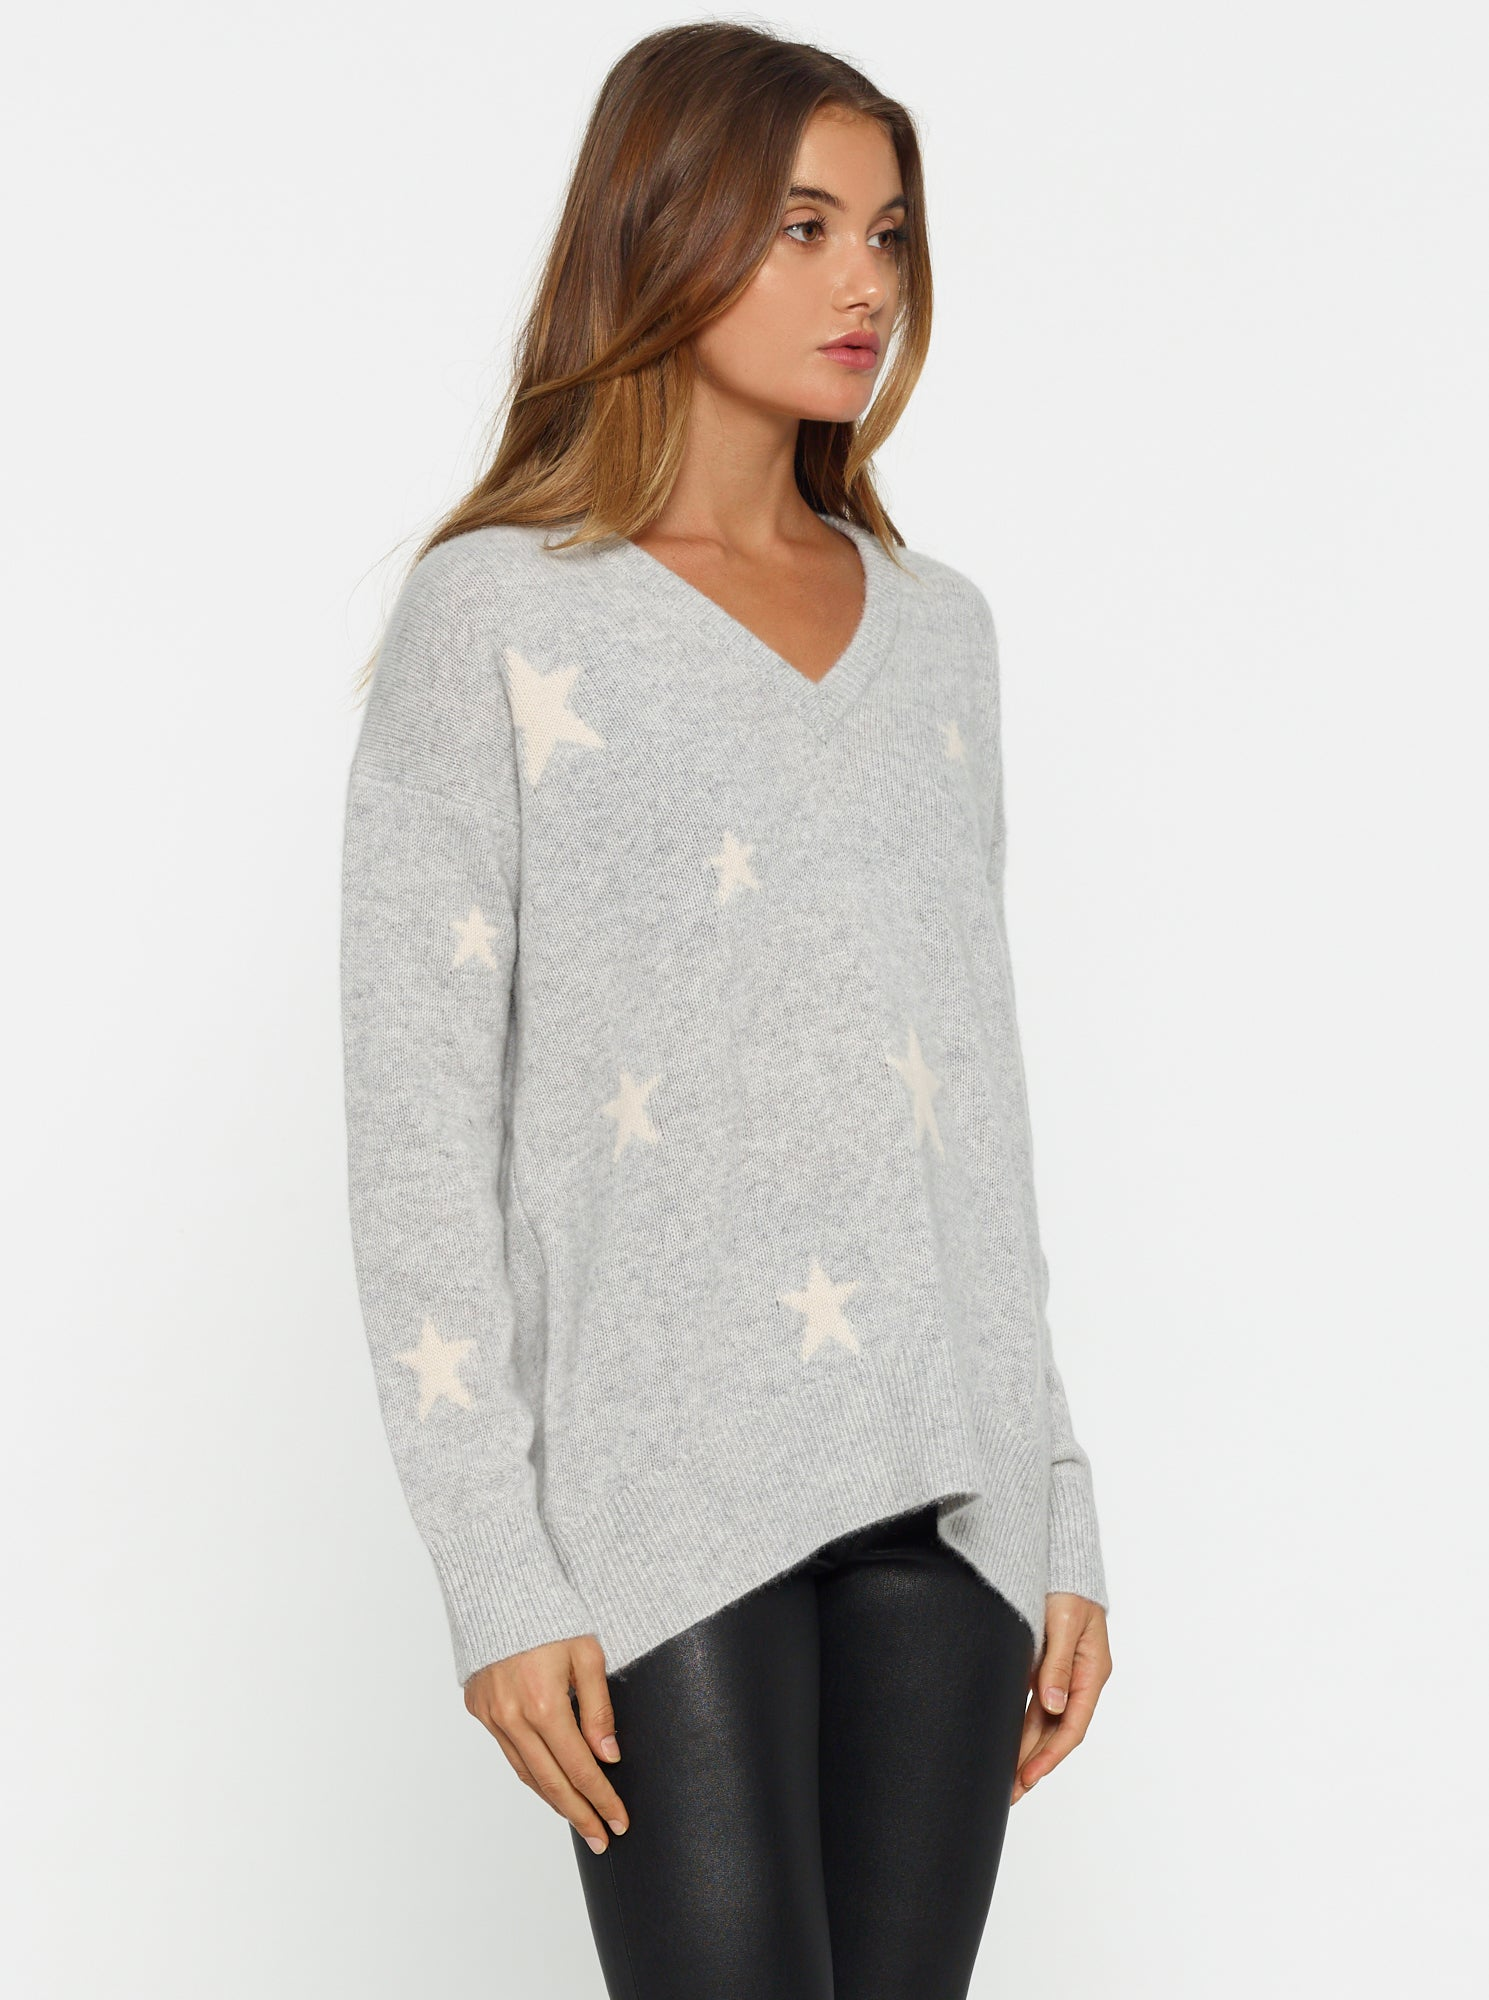 All The Stars Oversized V-Neck Knit - Grey Marle/Ivory